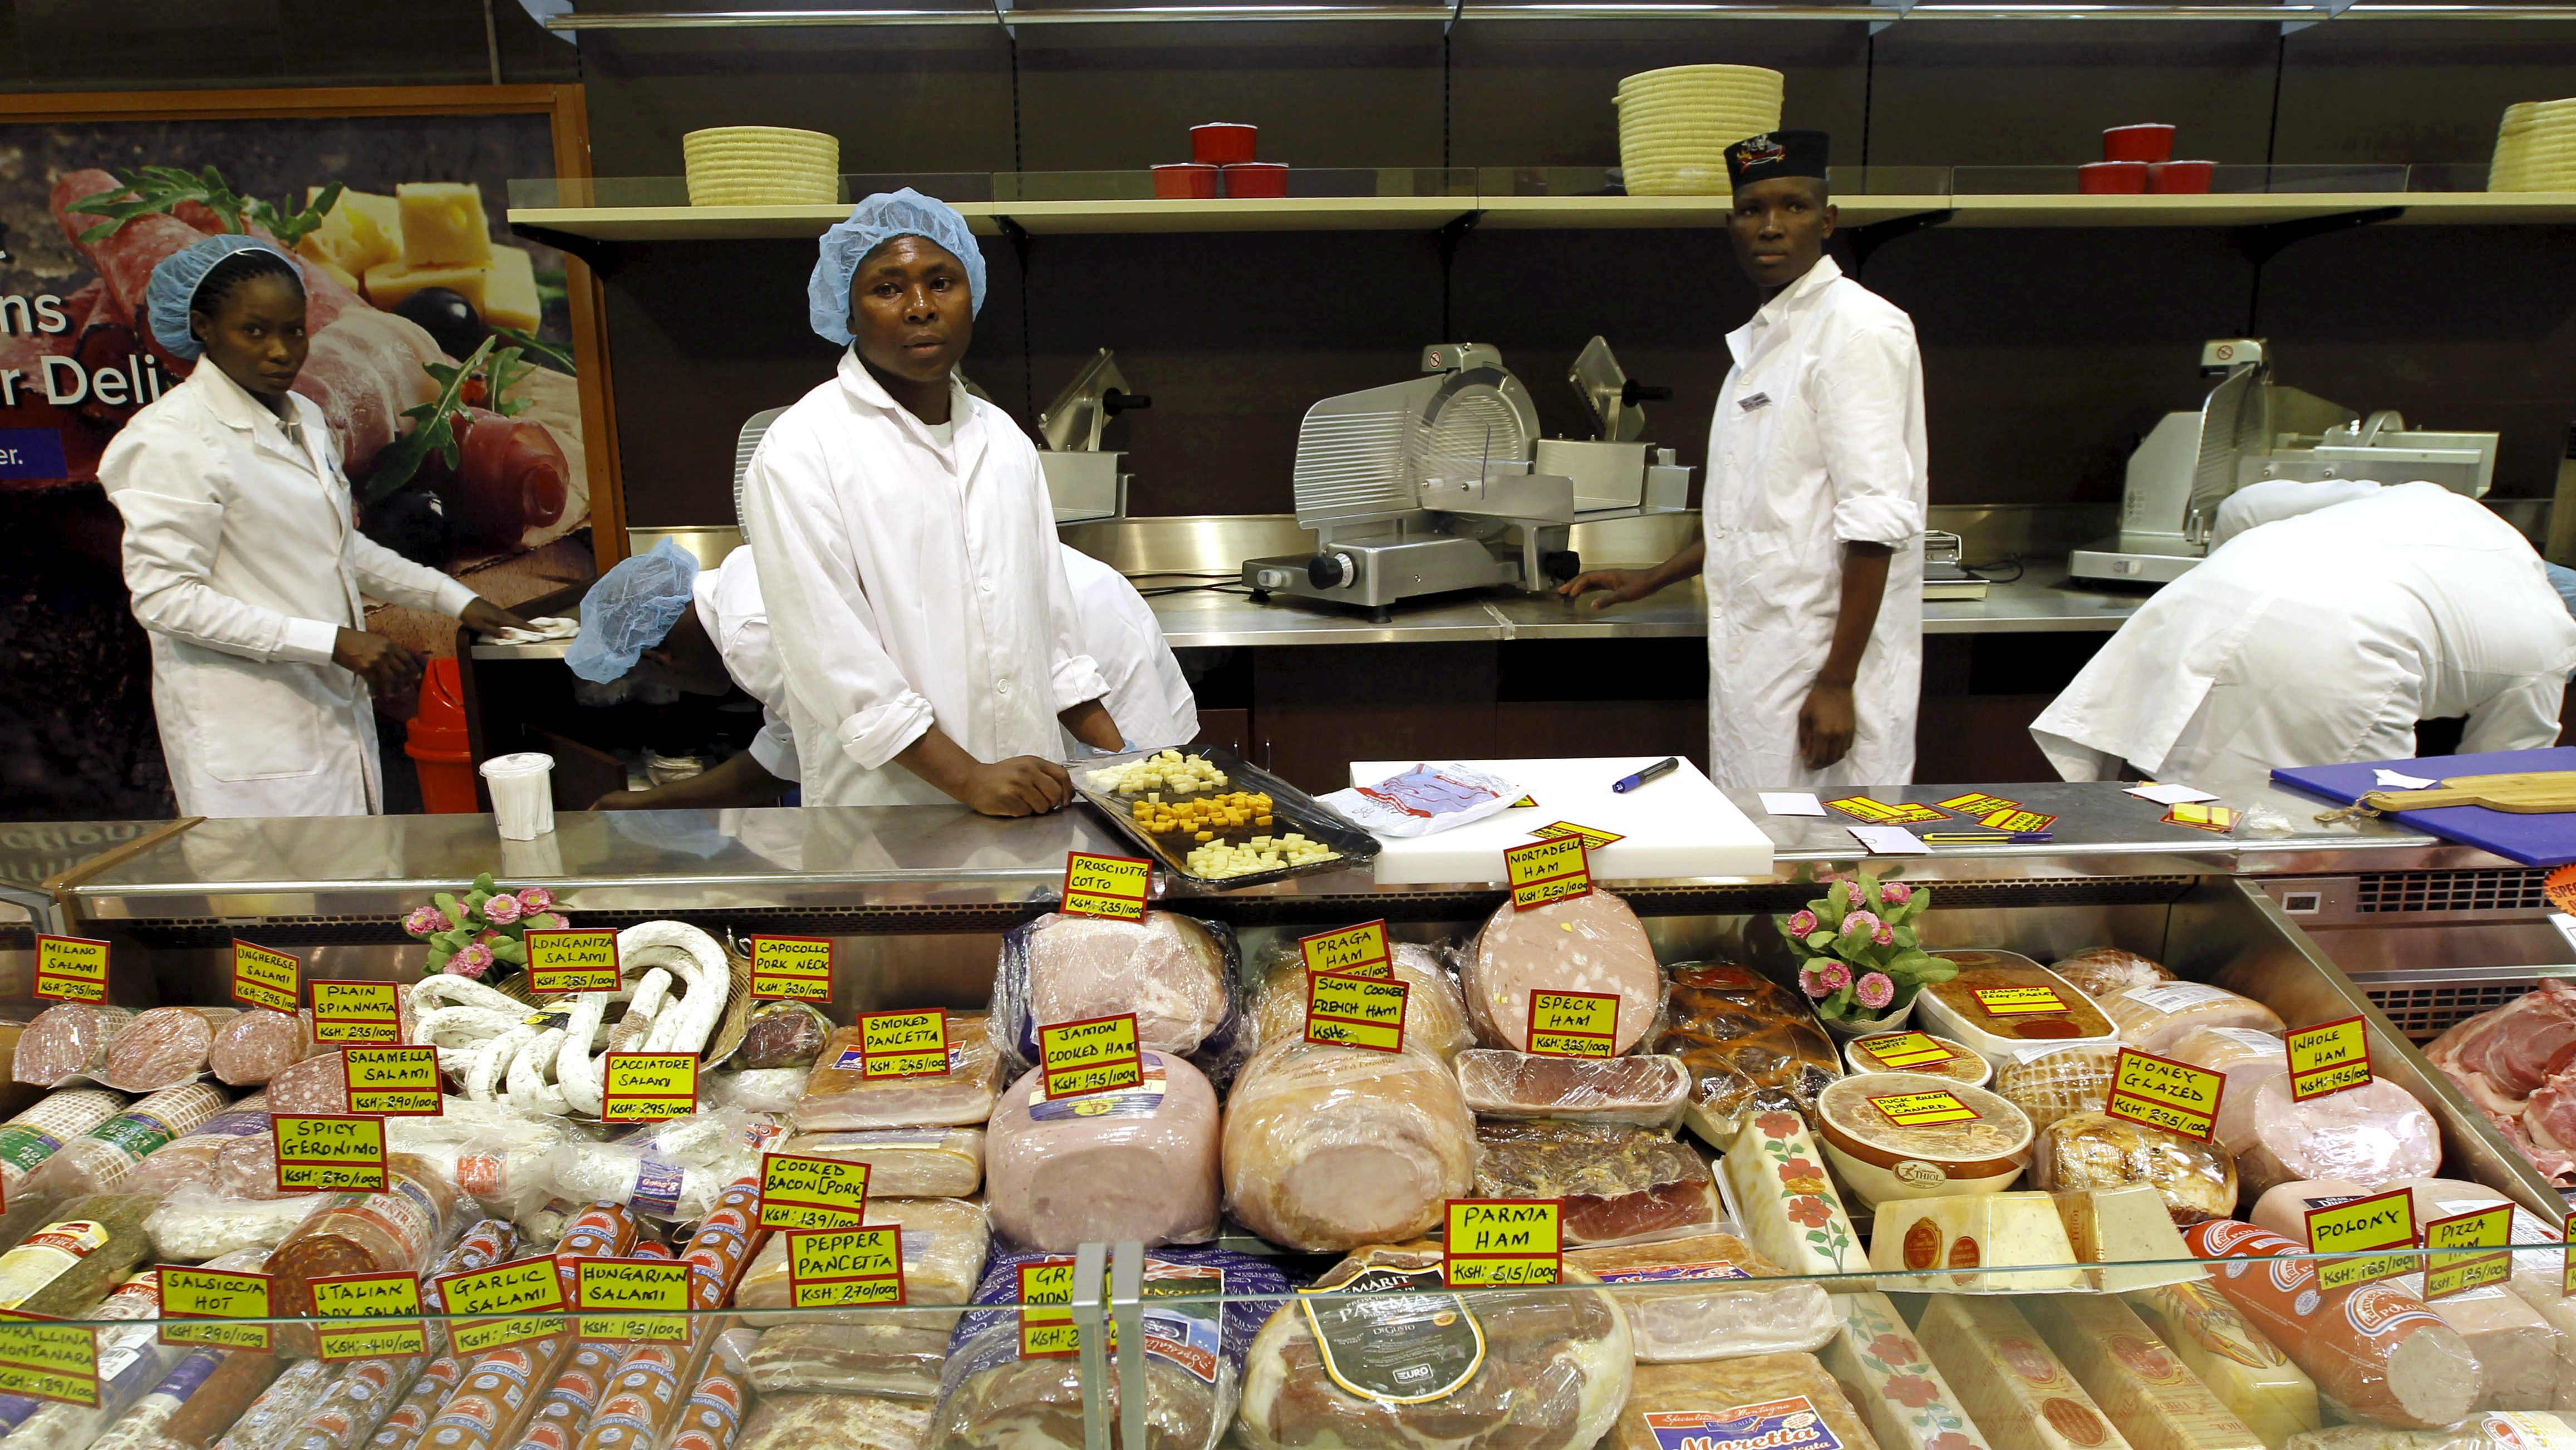 Workers arrange meat products inside the Nakumatt supermarket in the reopened Westgate shopping mall in Kenya's capital Nairobi